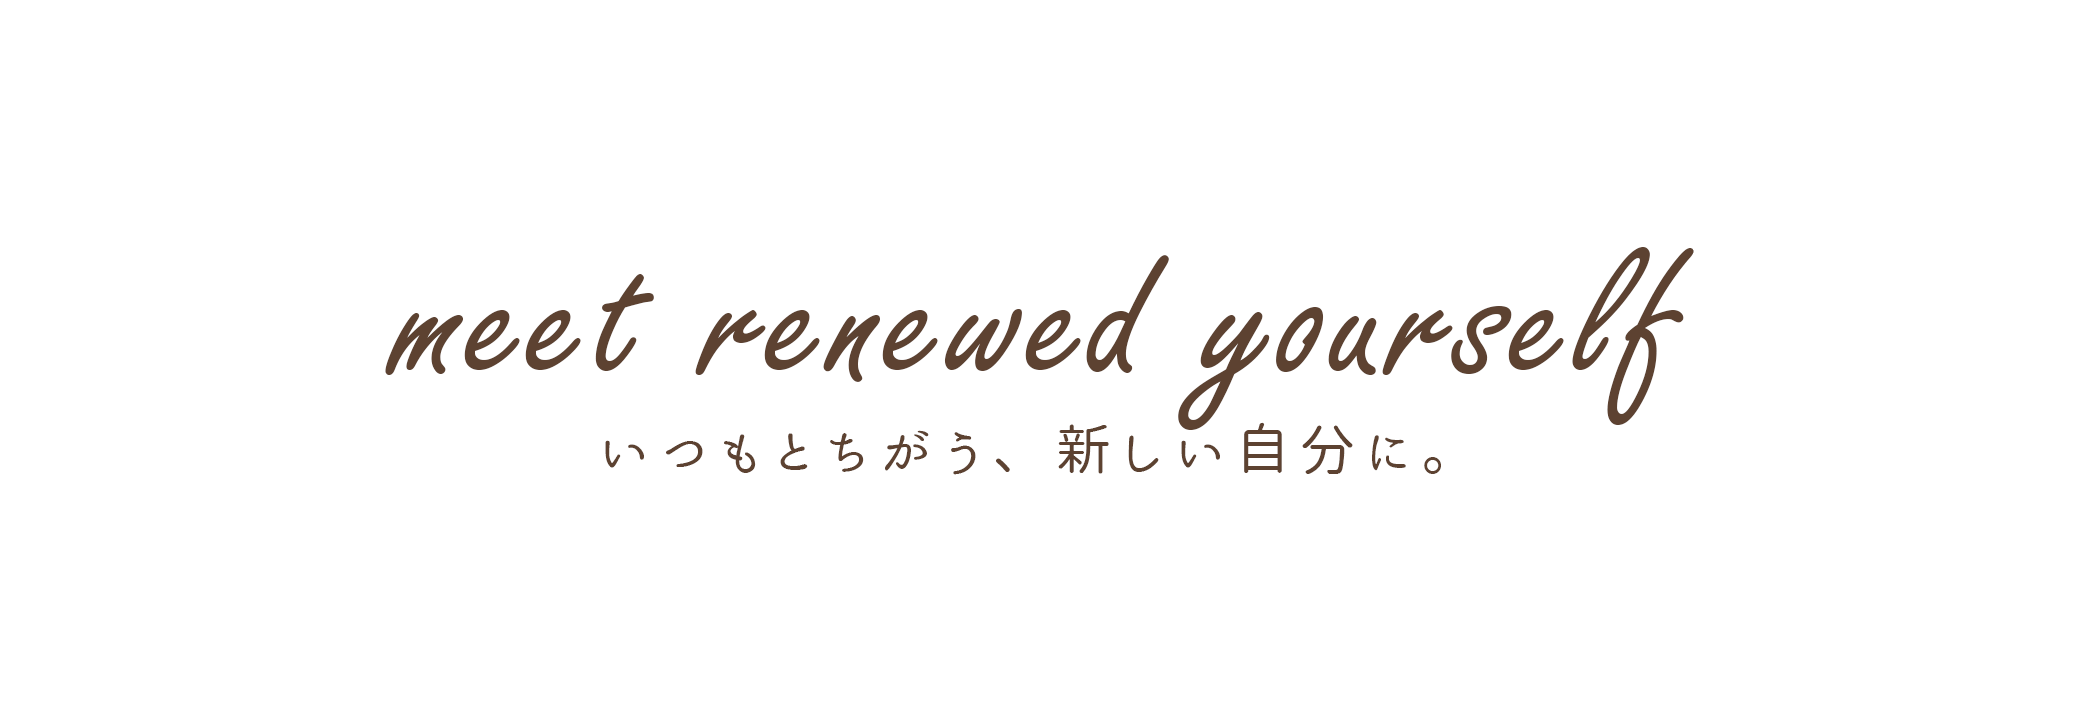 meet renewed yourself